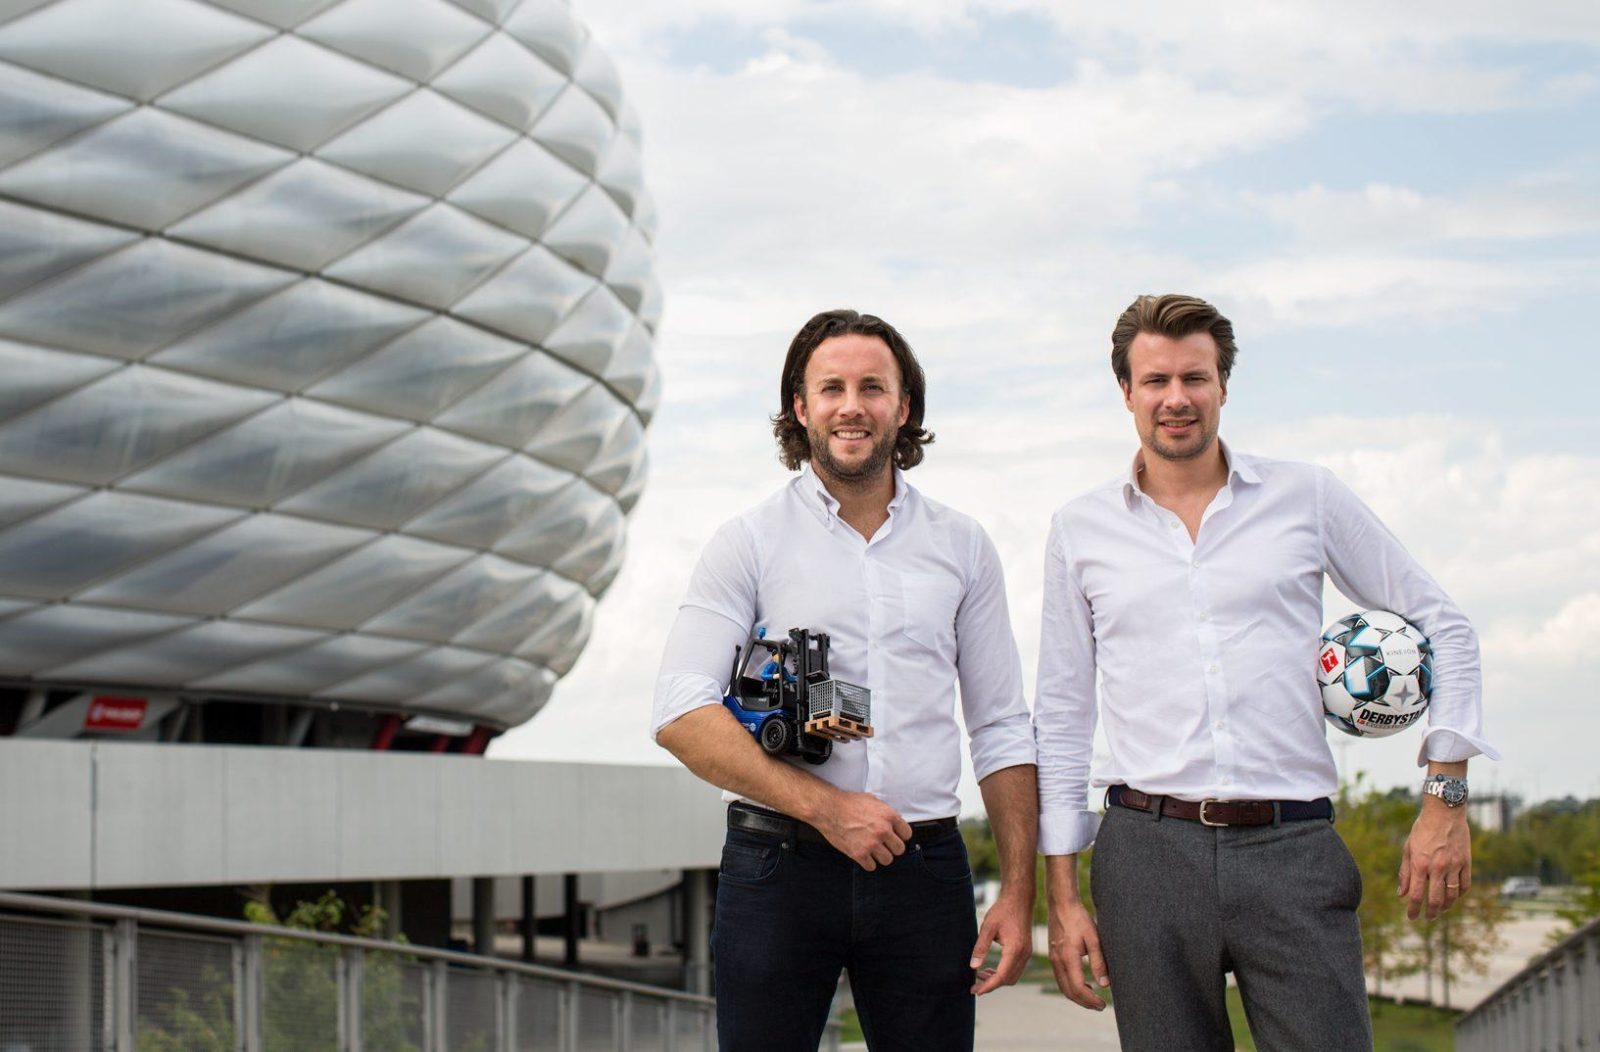 Alexander Hüettenbrink and Oliver Trinchera in front of the Allianz Arena in Munich